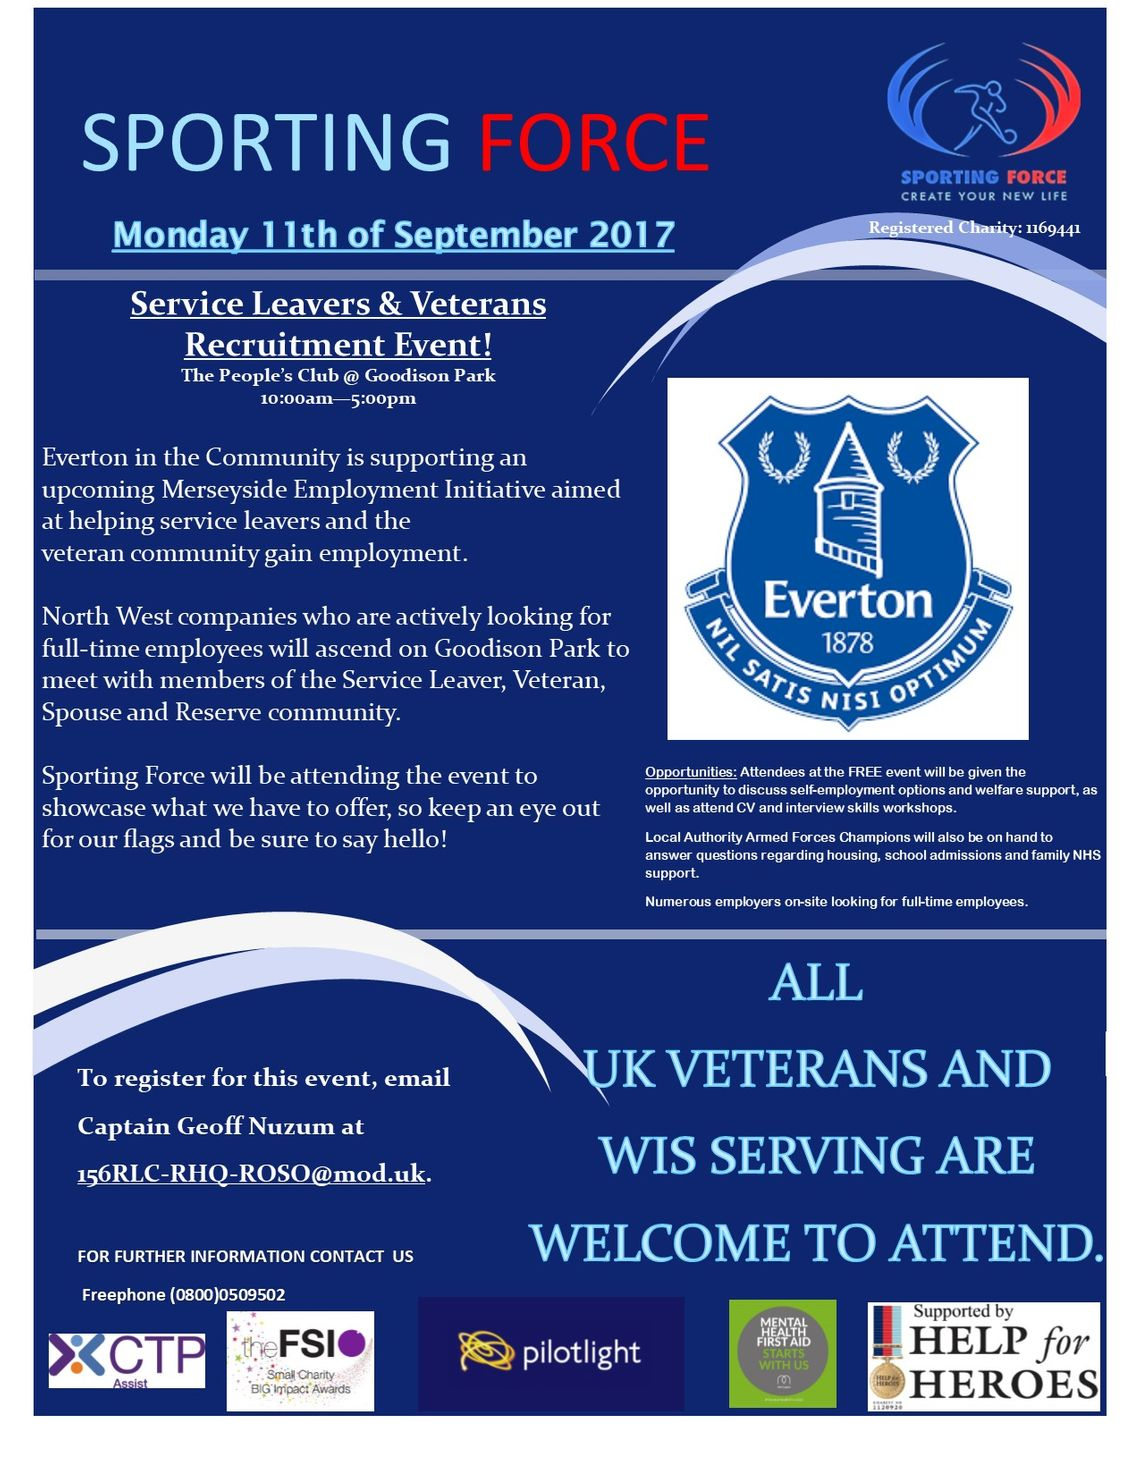 11th September Service Leavers and Veterans Recruitment Day!